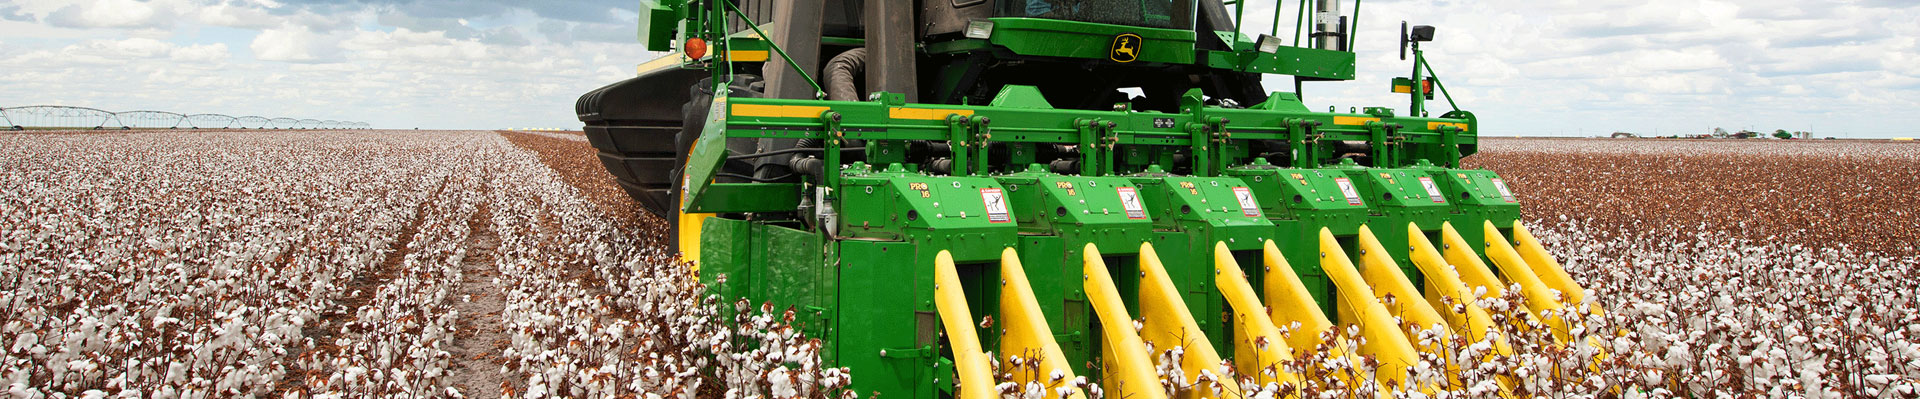 Cotton-Picker-Spindle-Grease